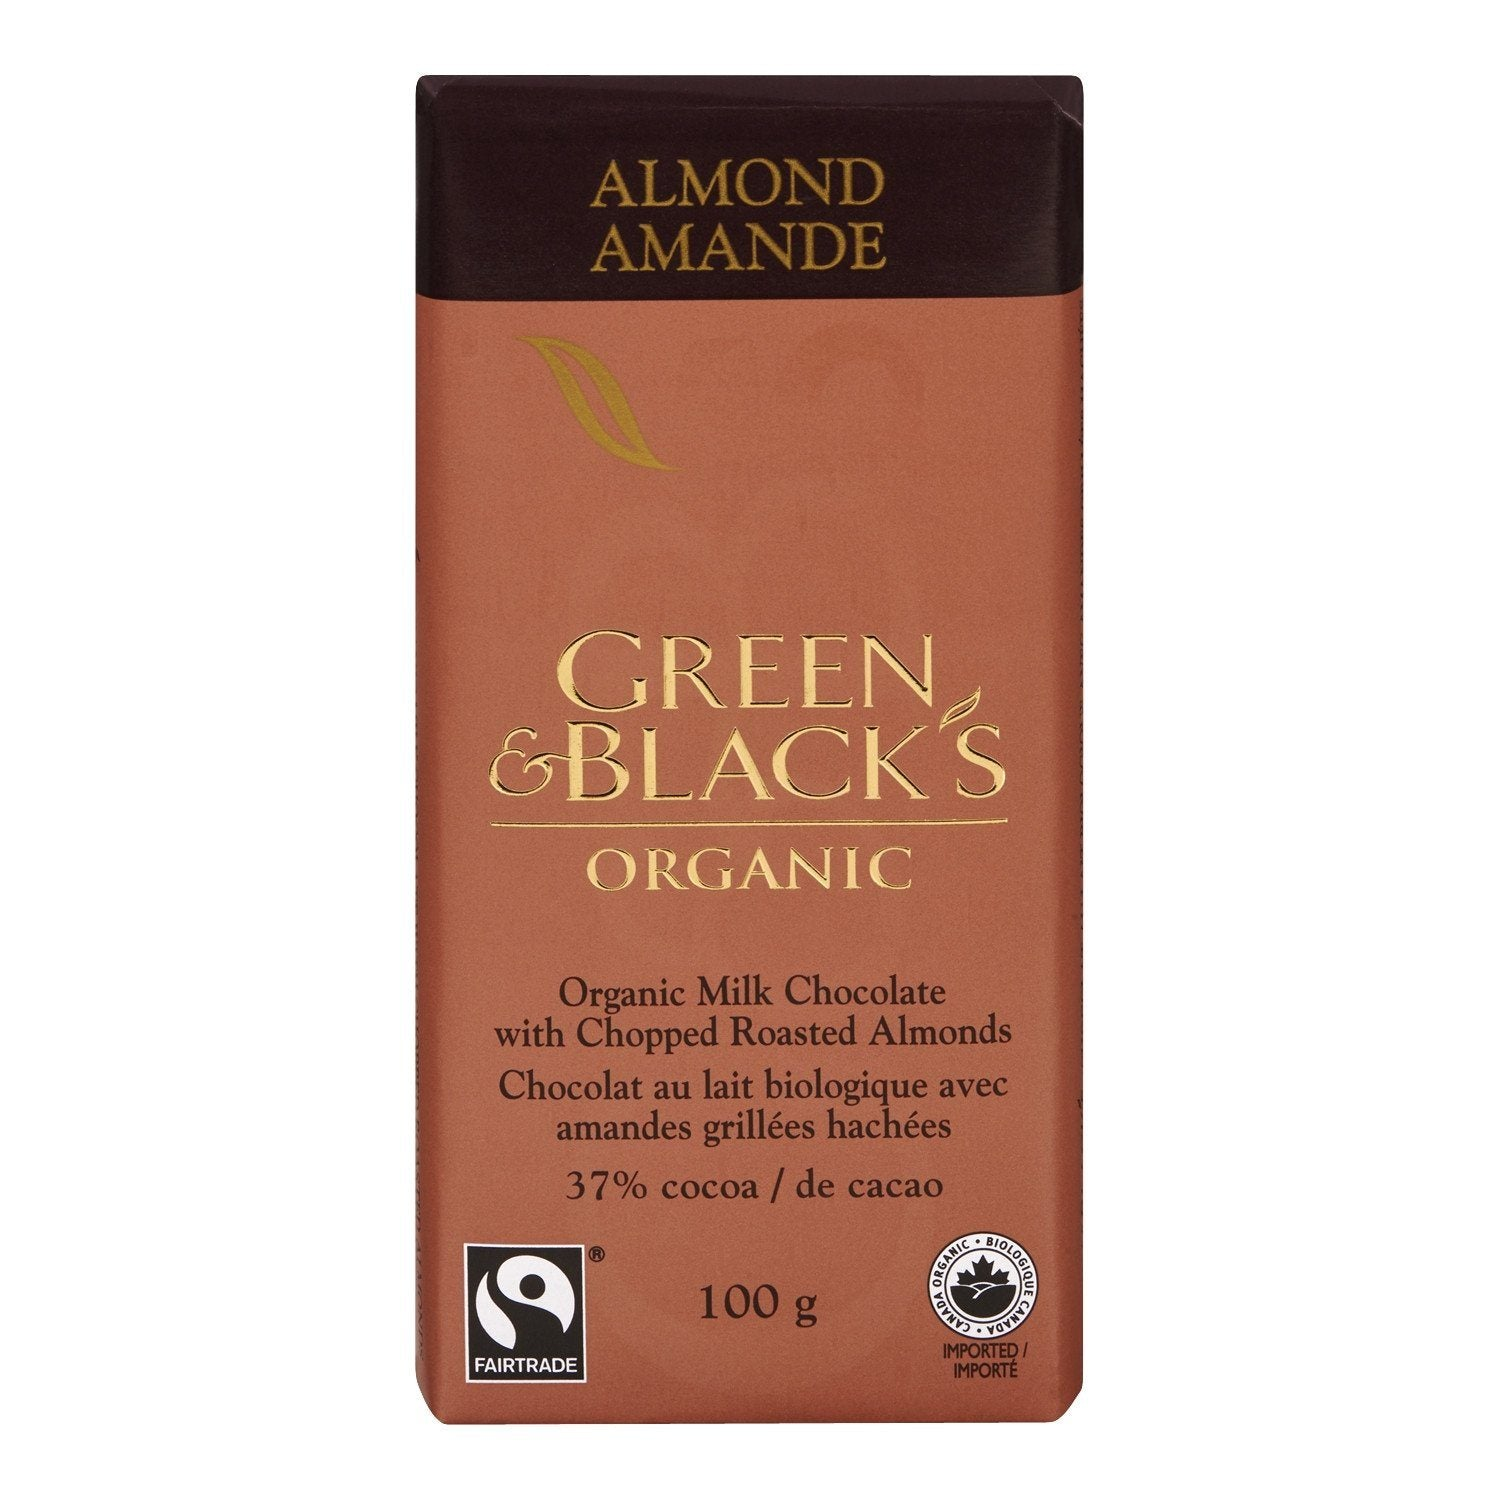 Food & Drink - Green & Black's Organic - Almond Milk Chocolate, 100g